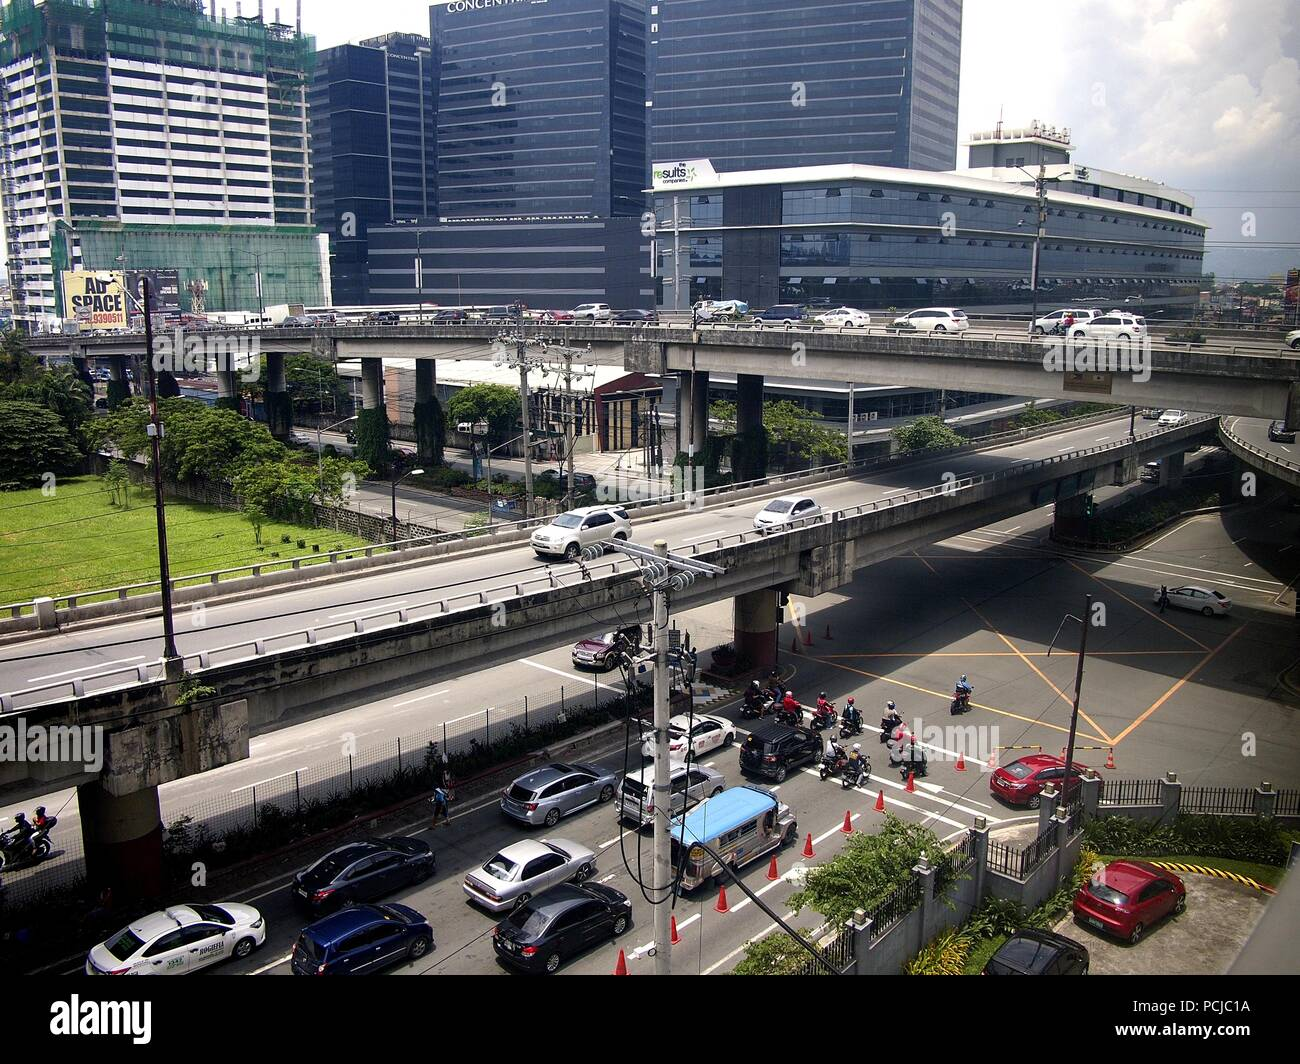 PASIG CITY, PHILIPPINES - JULY 29, 2018: Flyovers, buildings and bridges at a busy intersection in Pasig City, Philippines. - Stock Image